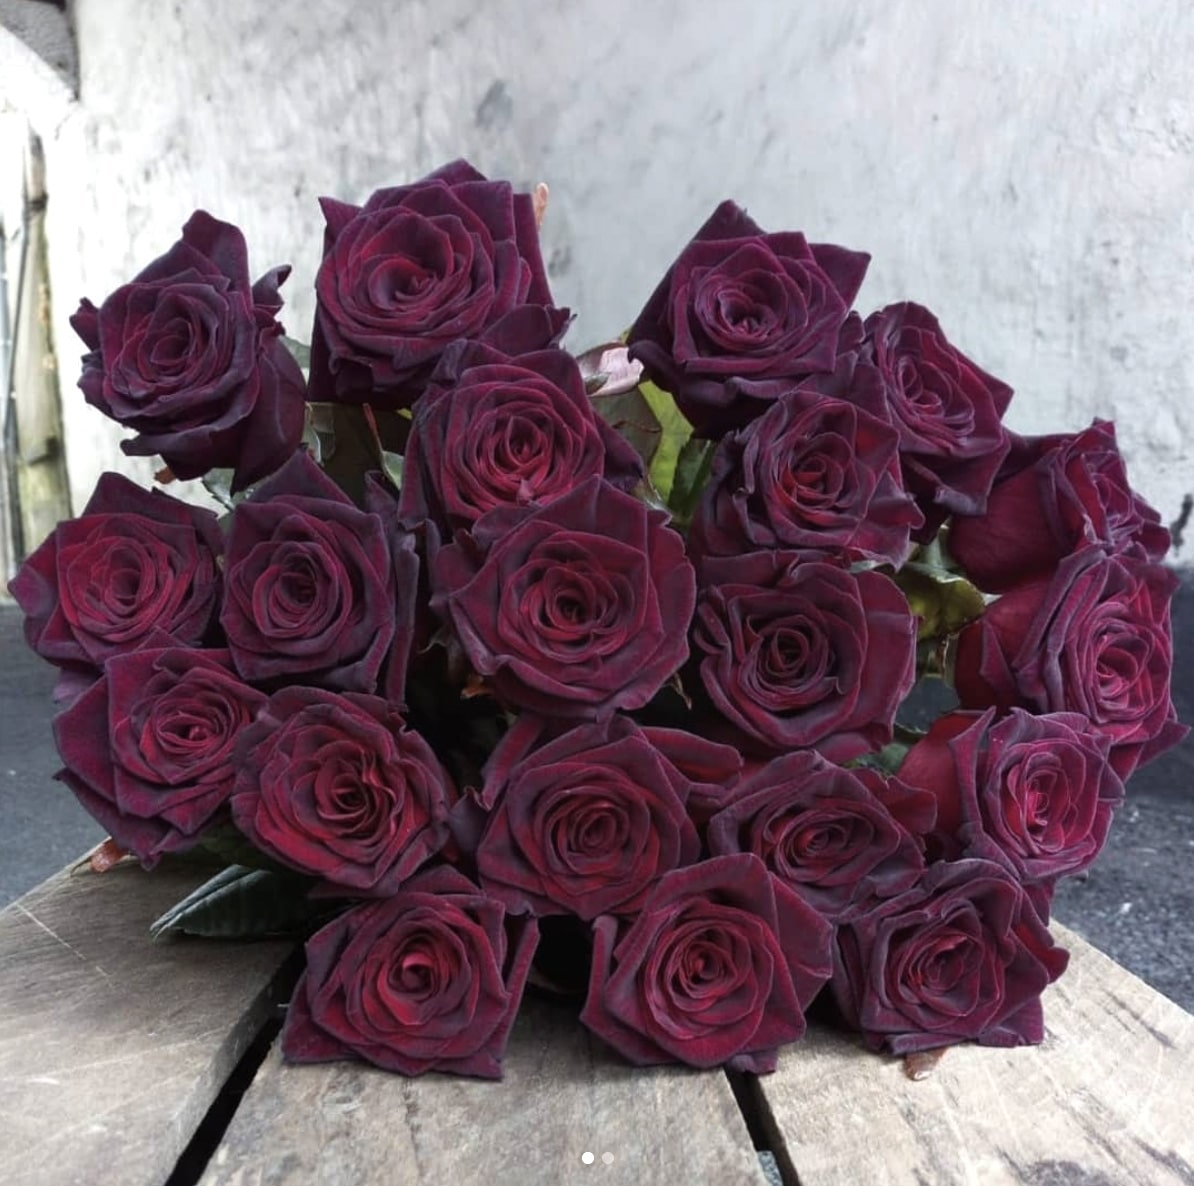 Baccara Rose Meaning